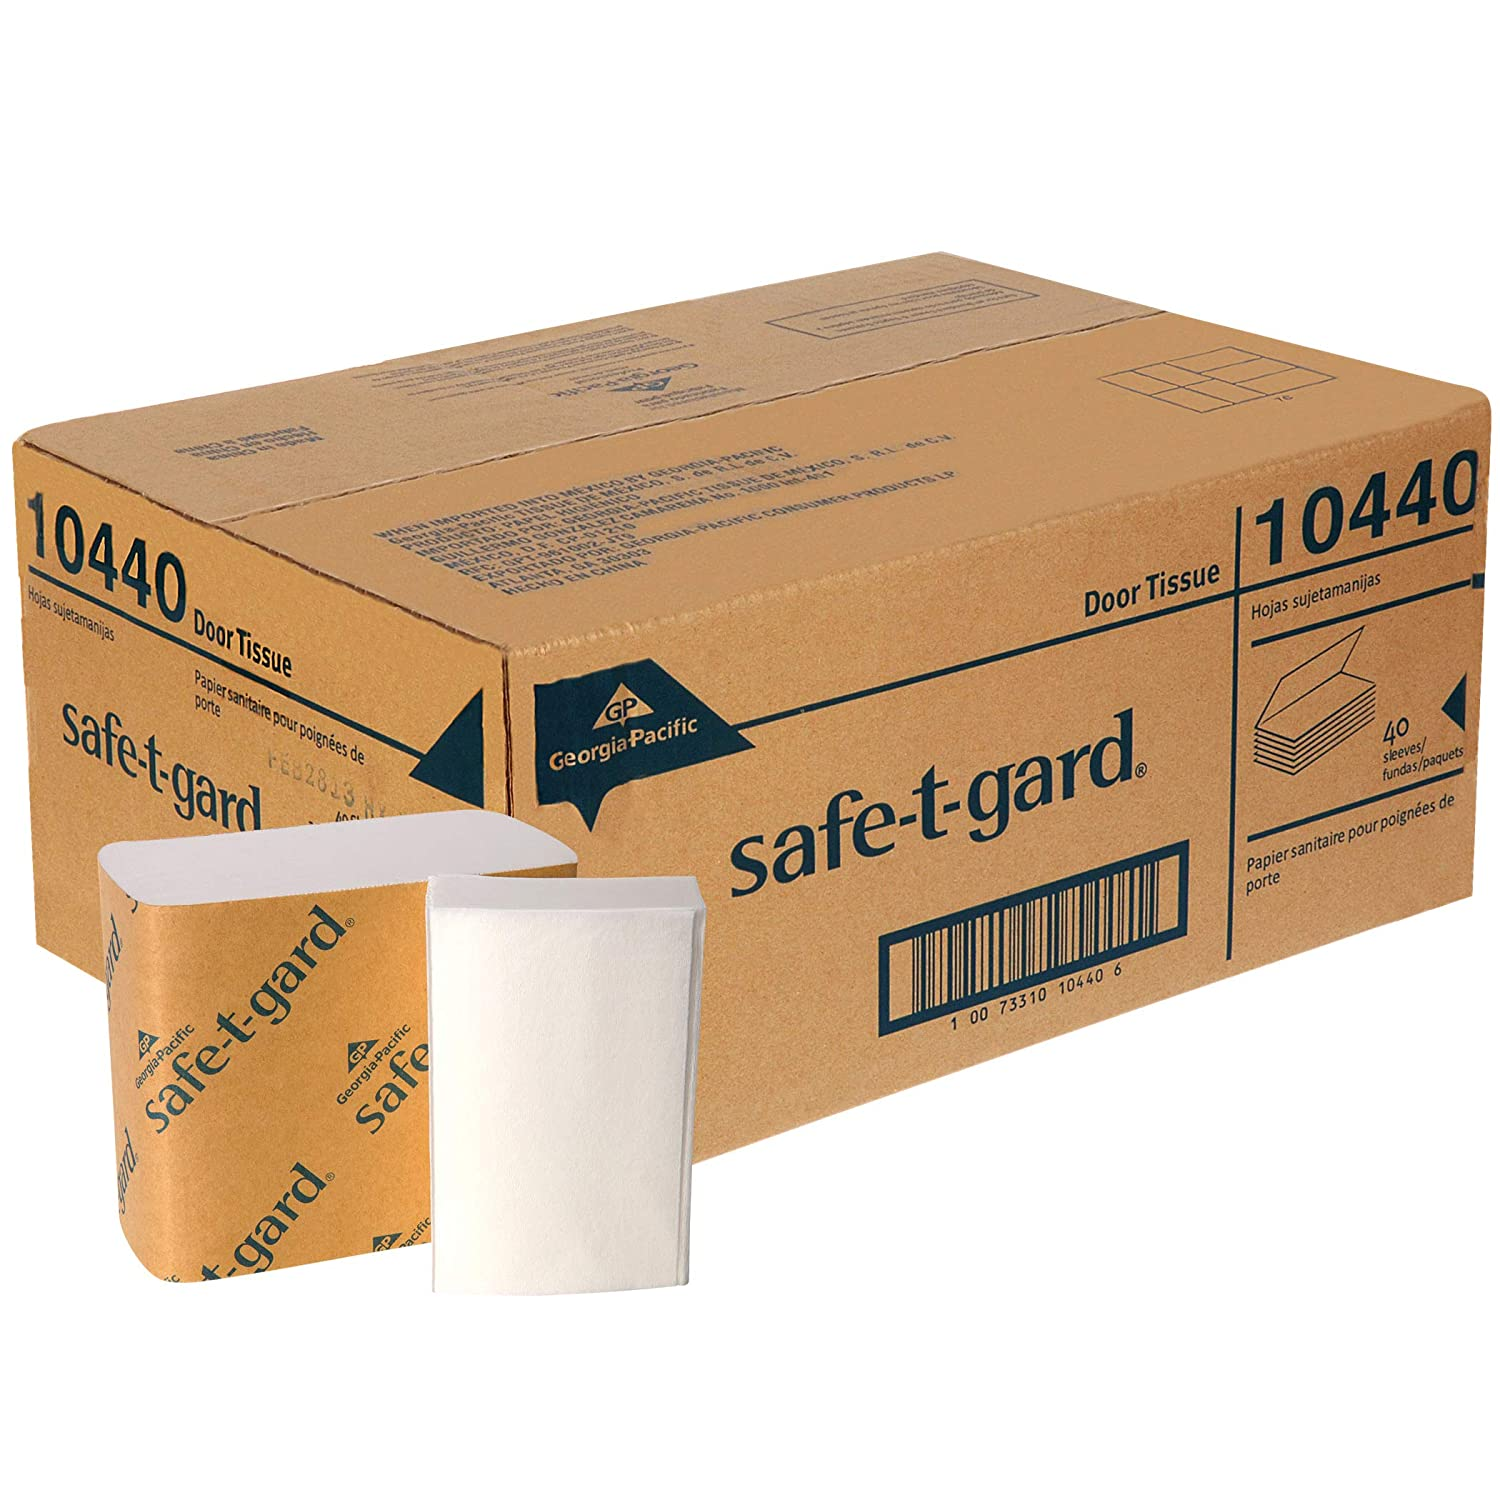 Georgia-Pacific Challenge the lowest price of Japan ☆ Safe-T-Gard Facial Tissue M Now free shipping White 40 Carto per